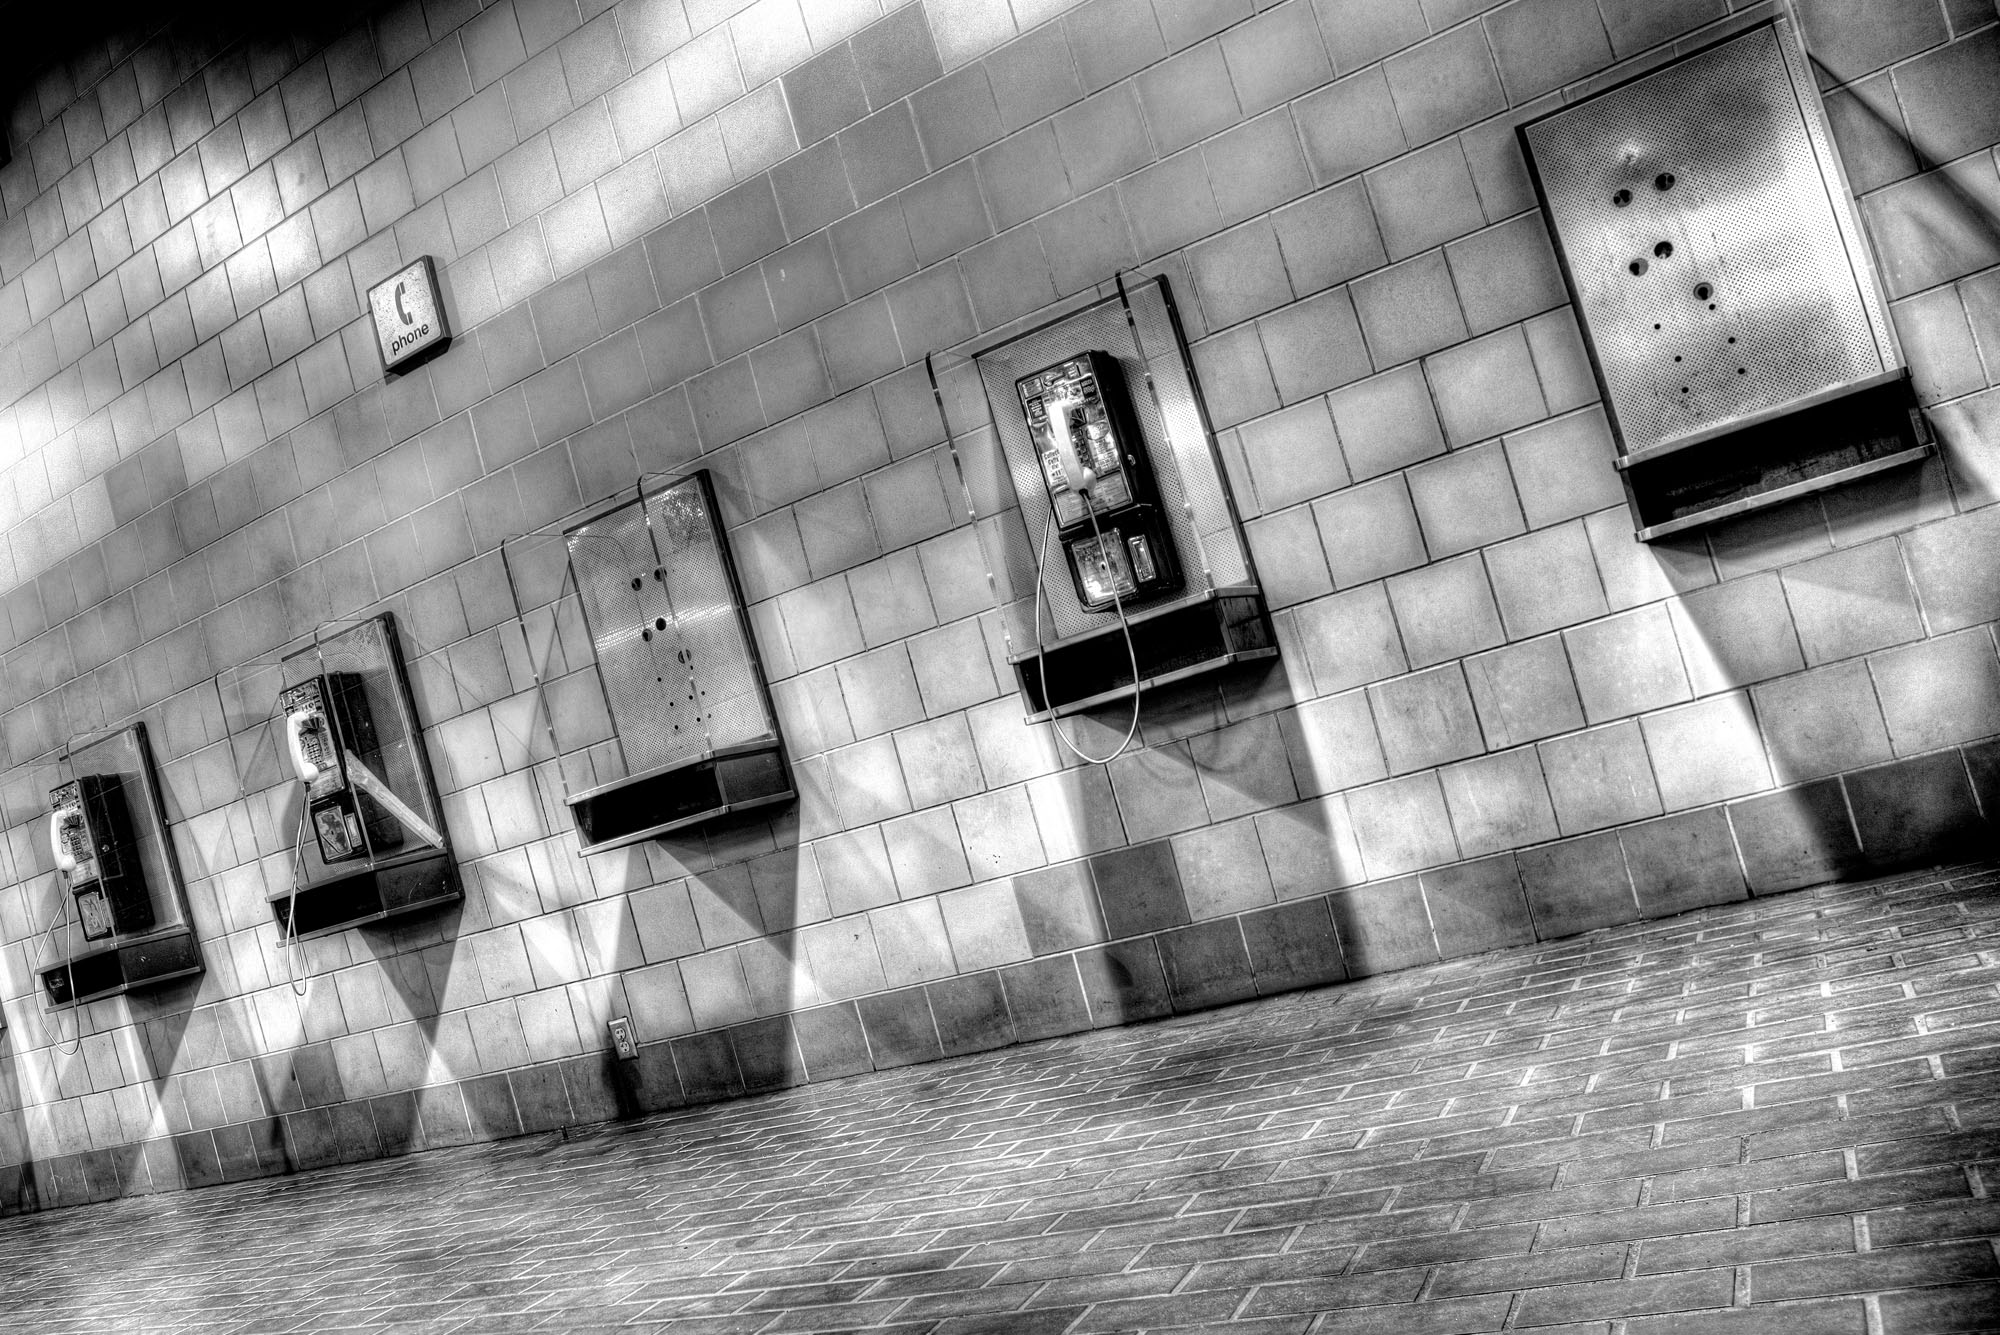 phones_1_2_3_tonemapped